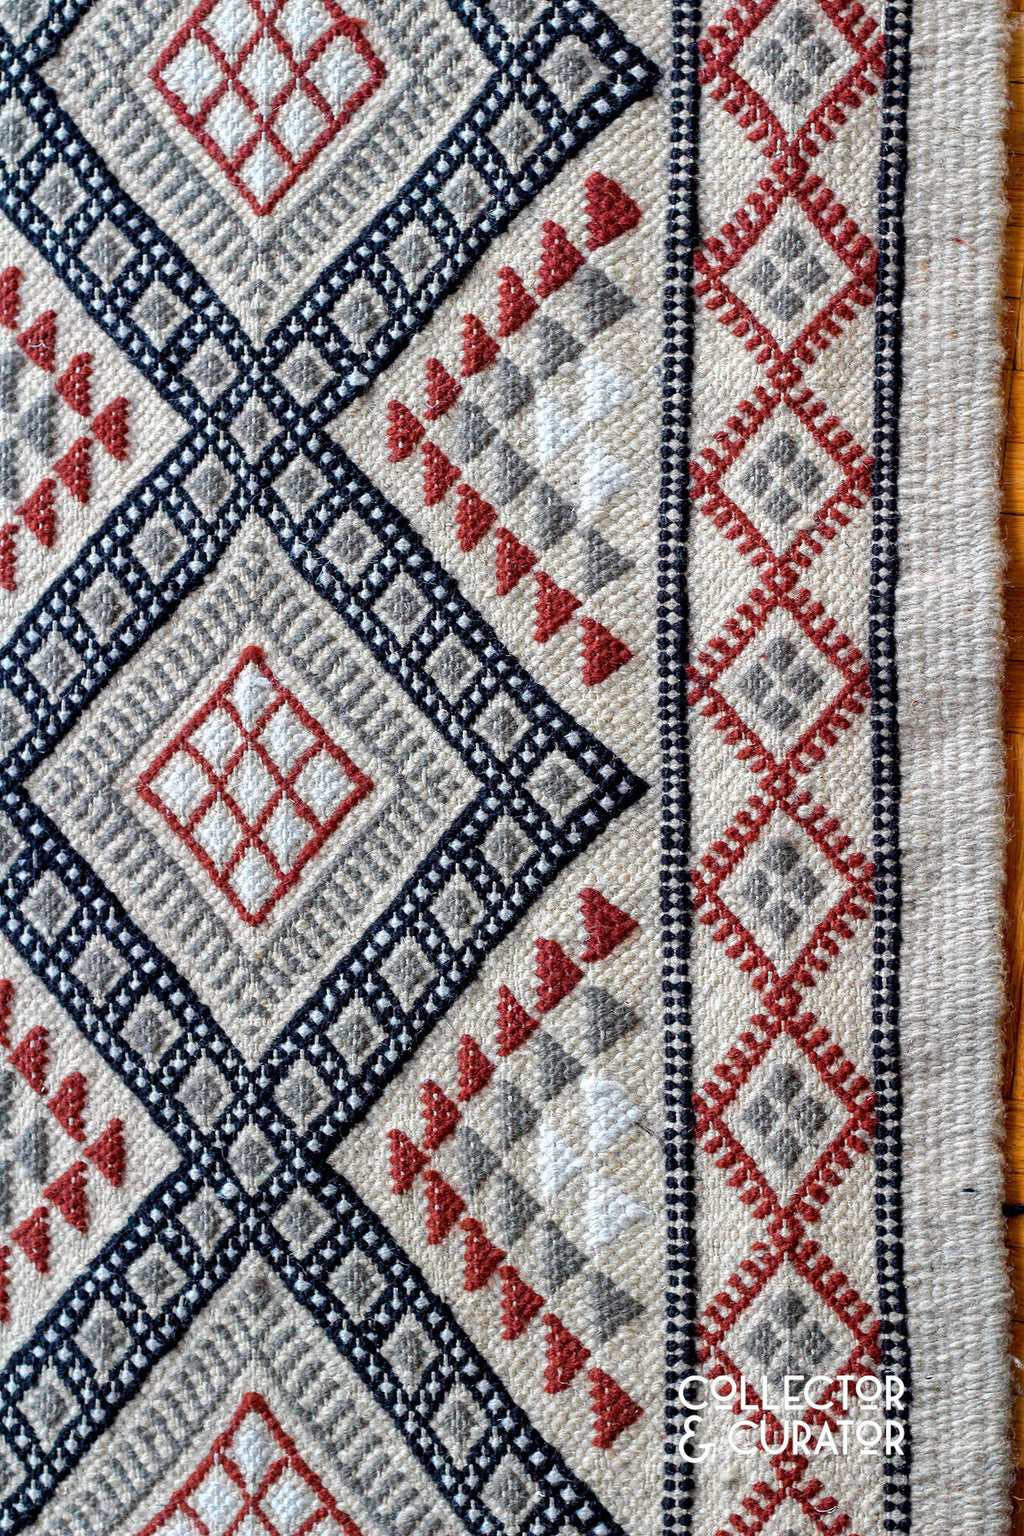 Runner Hand Made in Tunisia Rug Carpet - Collector & Curator